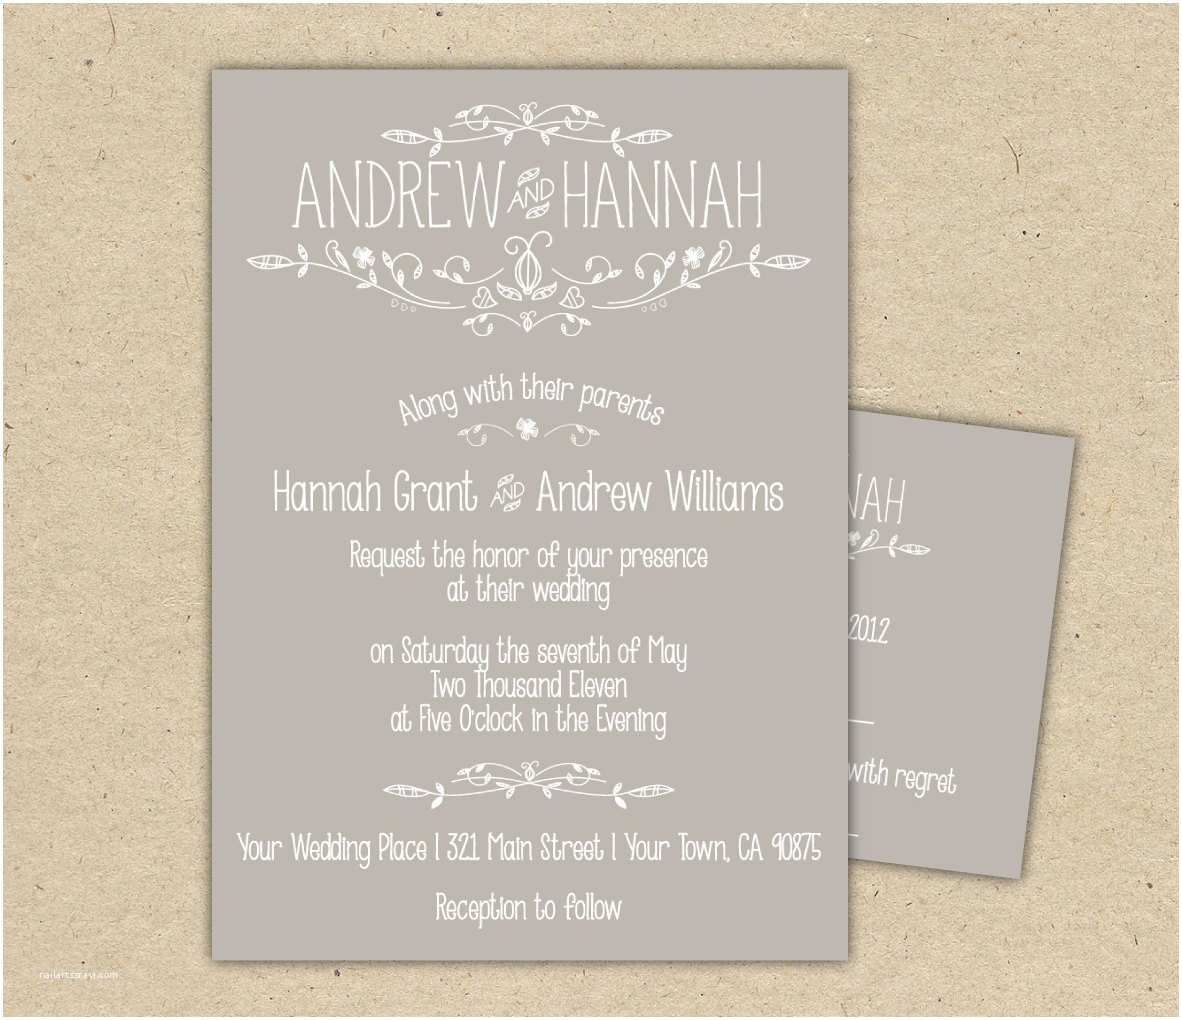 Electronic Wedding Invitations Vintage Wedding Invitation and Rsvp P R I N T E D Country